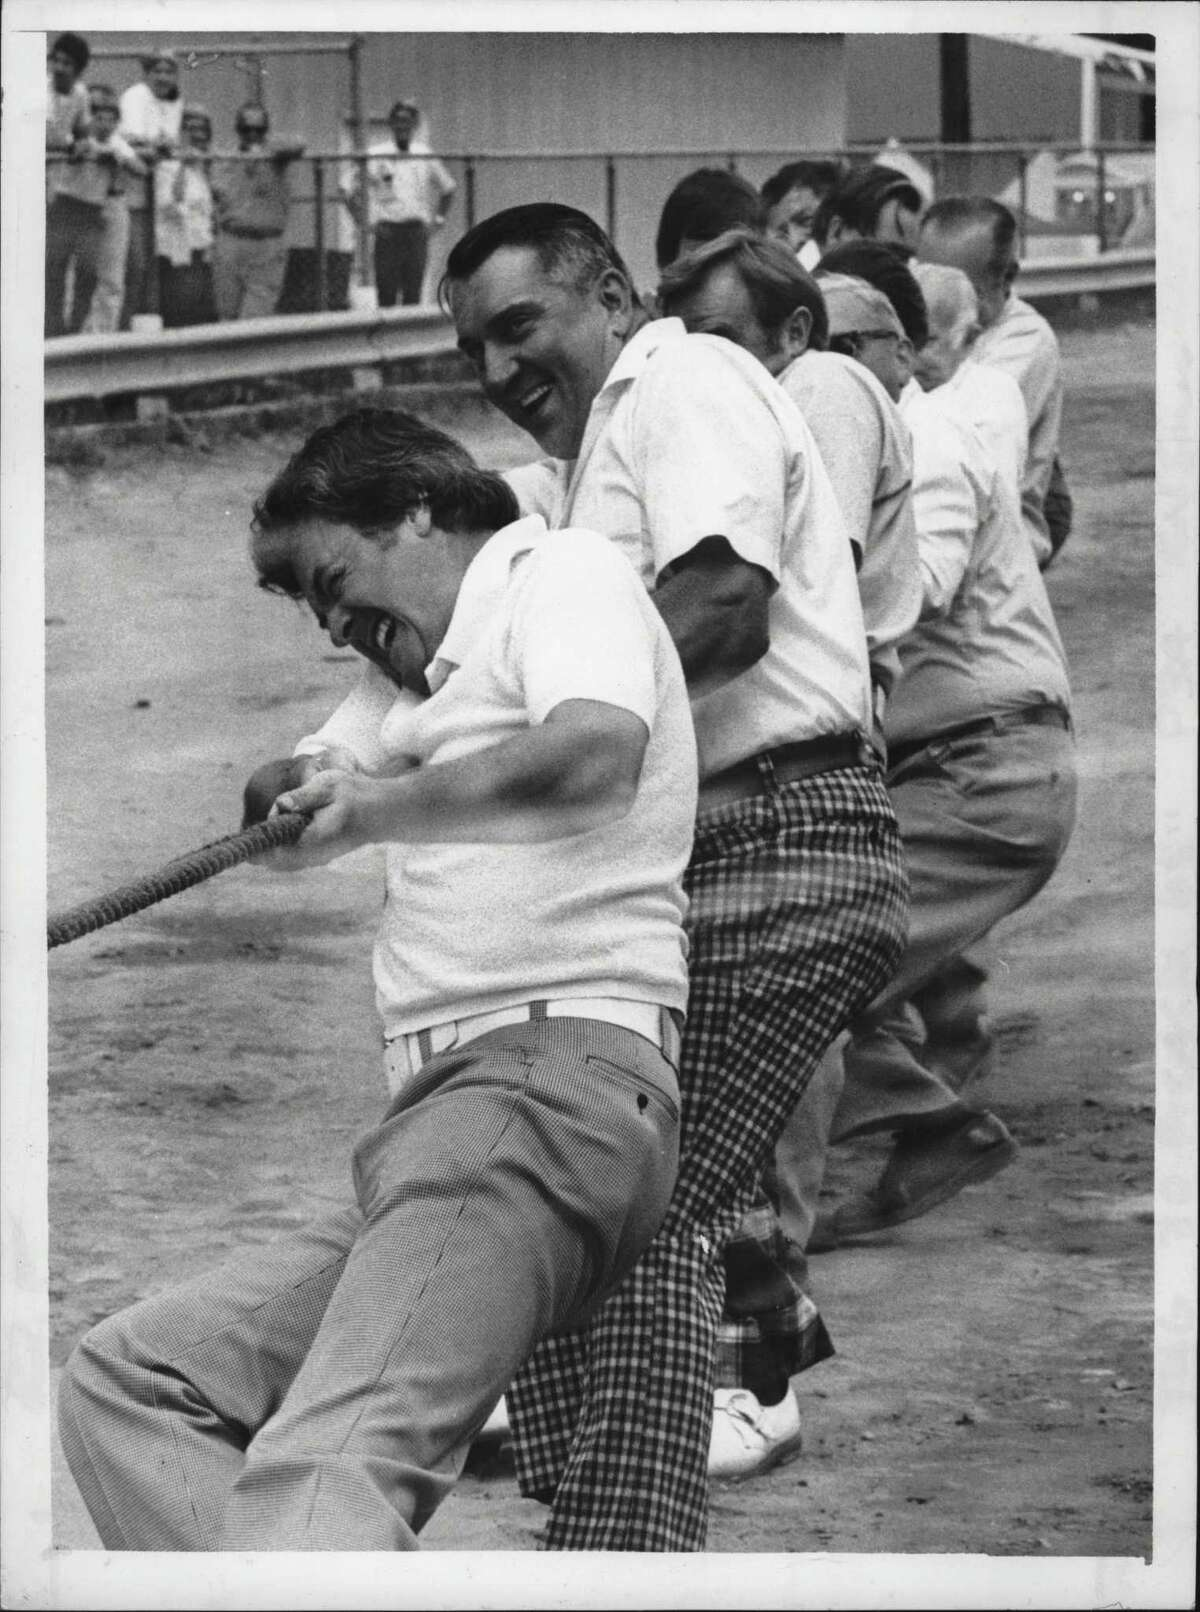 Fred McHeary and Men in Tug-of-War, Saratoga County Fair. Saratoga County Fair. Fred McNeary, John F. Dudek. Supervisors team - winners. July 28, 1977 (Paul Kniskern/Times Union Archive)